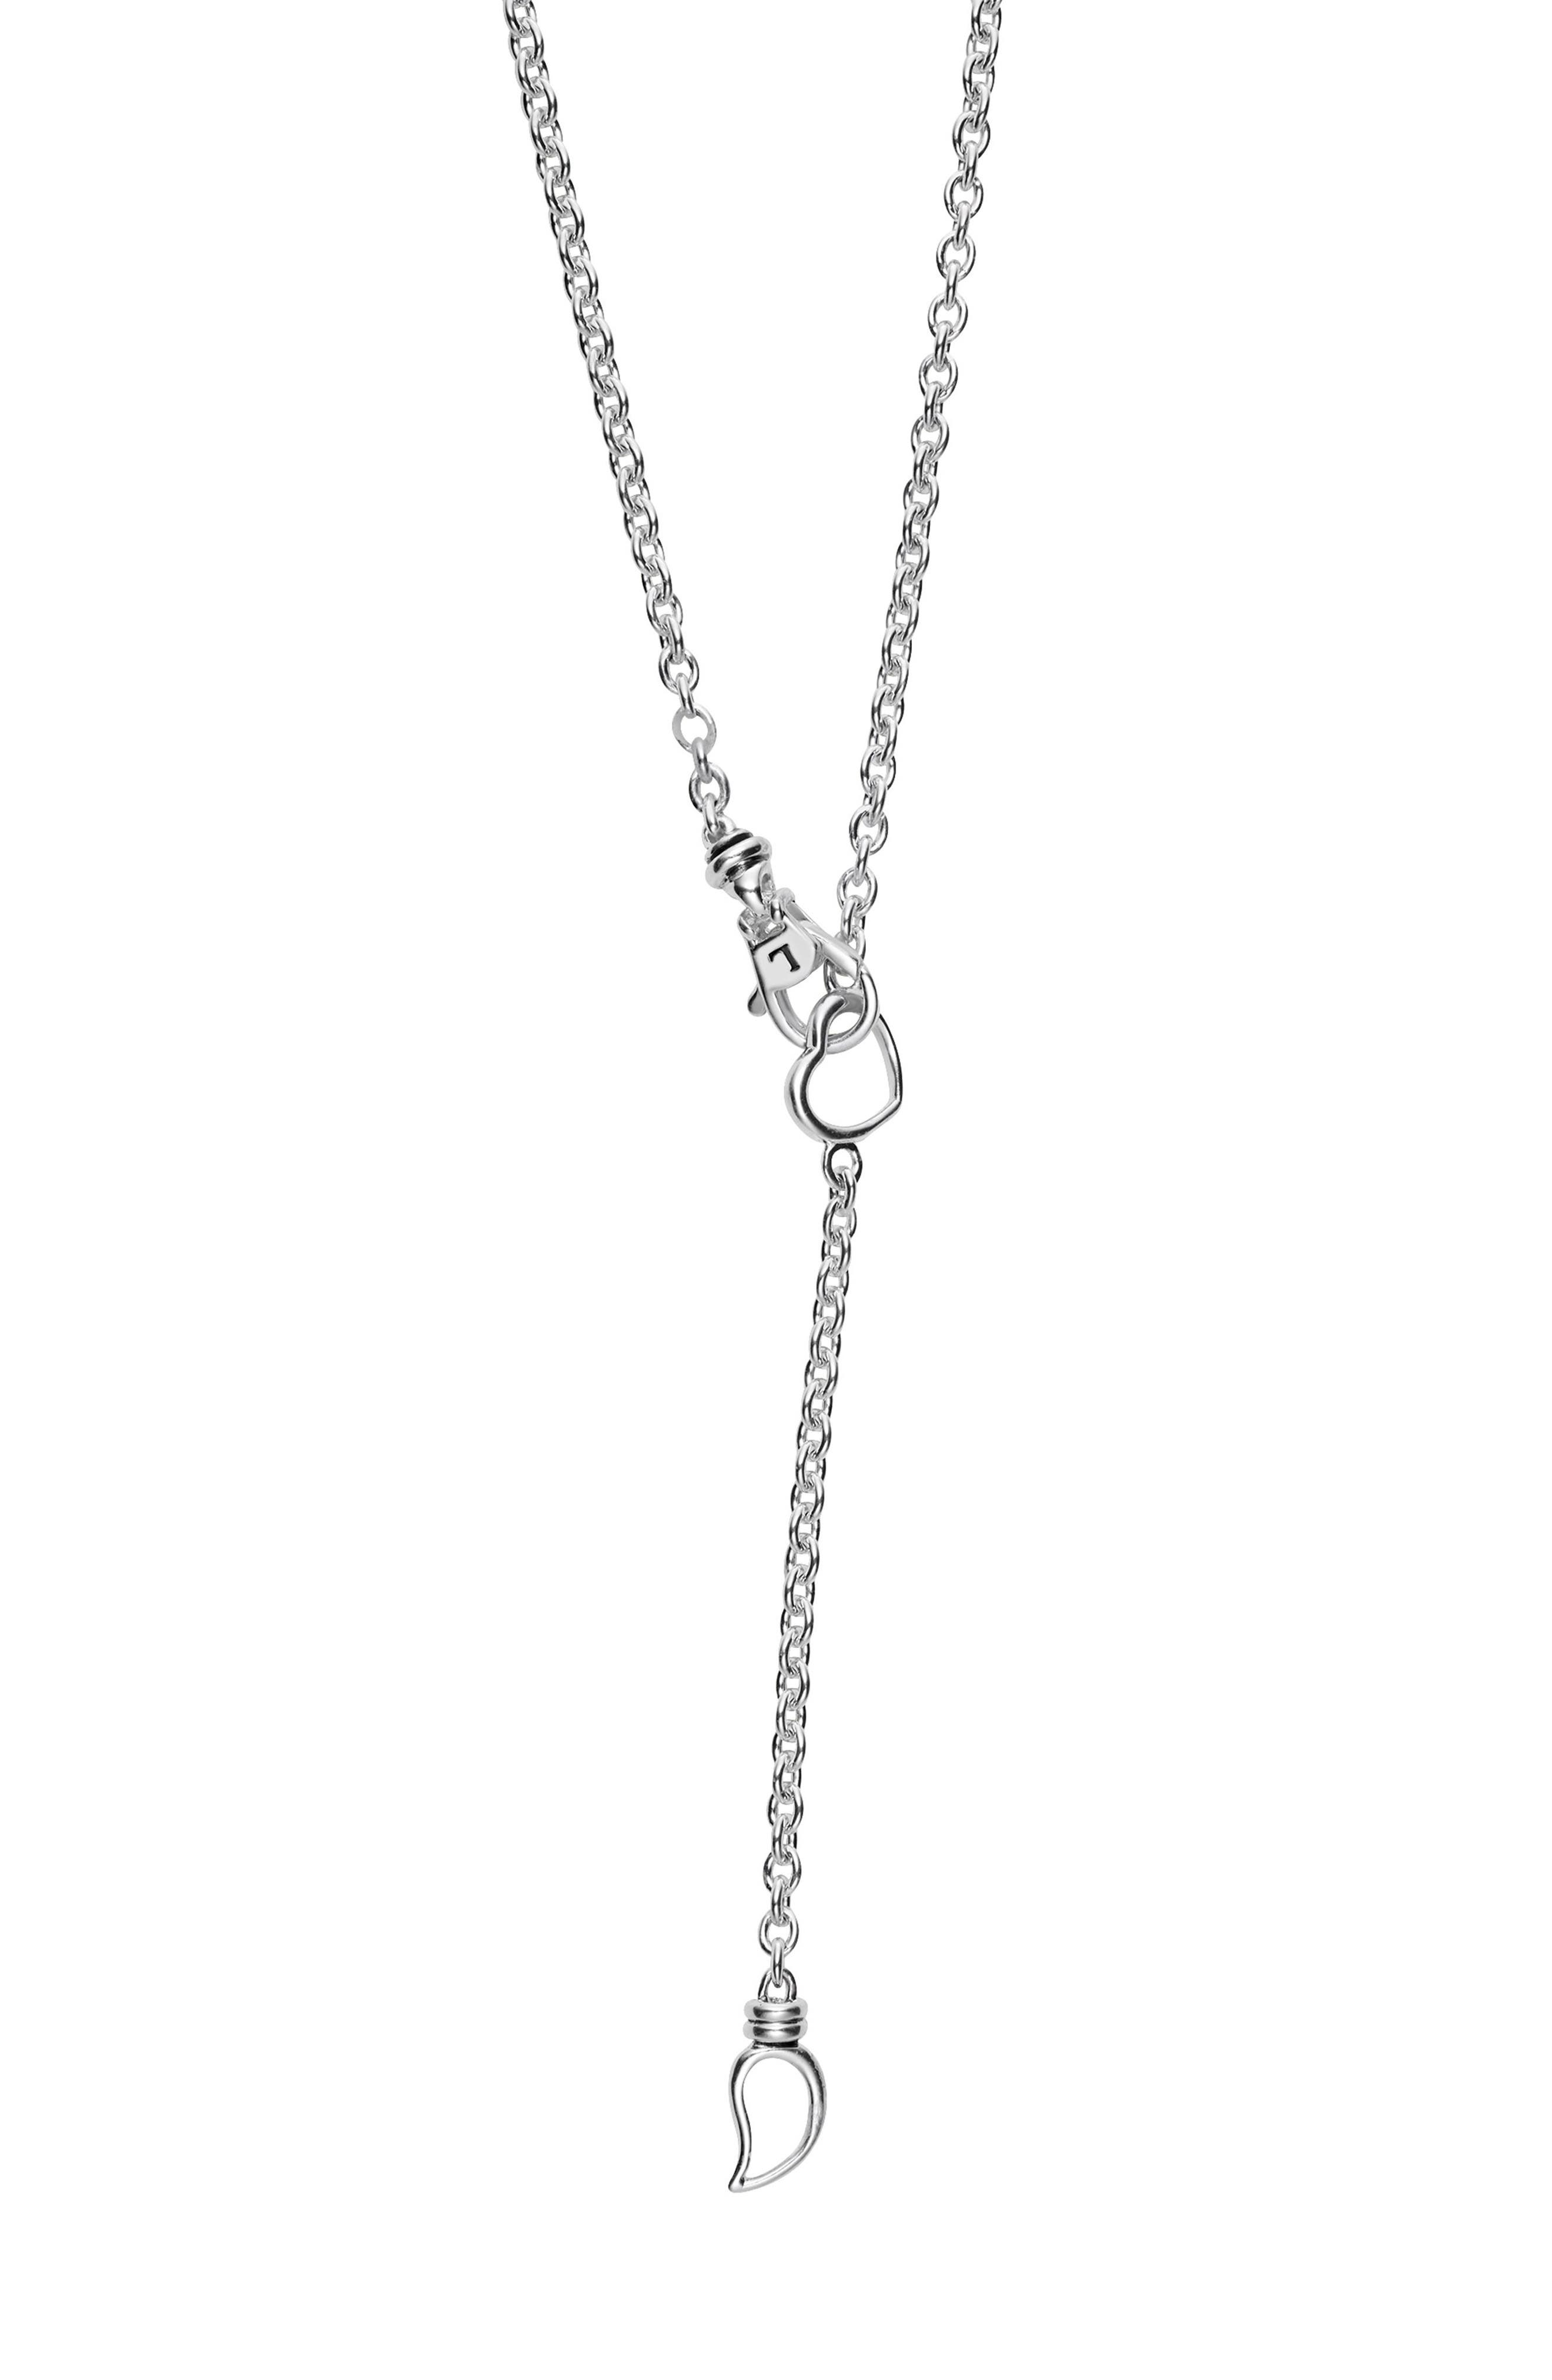 Beloved Diamond XOXO Chain Necklace,                             Alternate thumbnail 4, color,                             SILVER/ DIAMOND